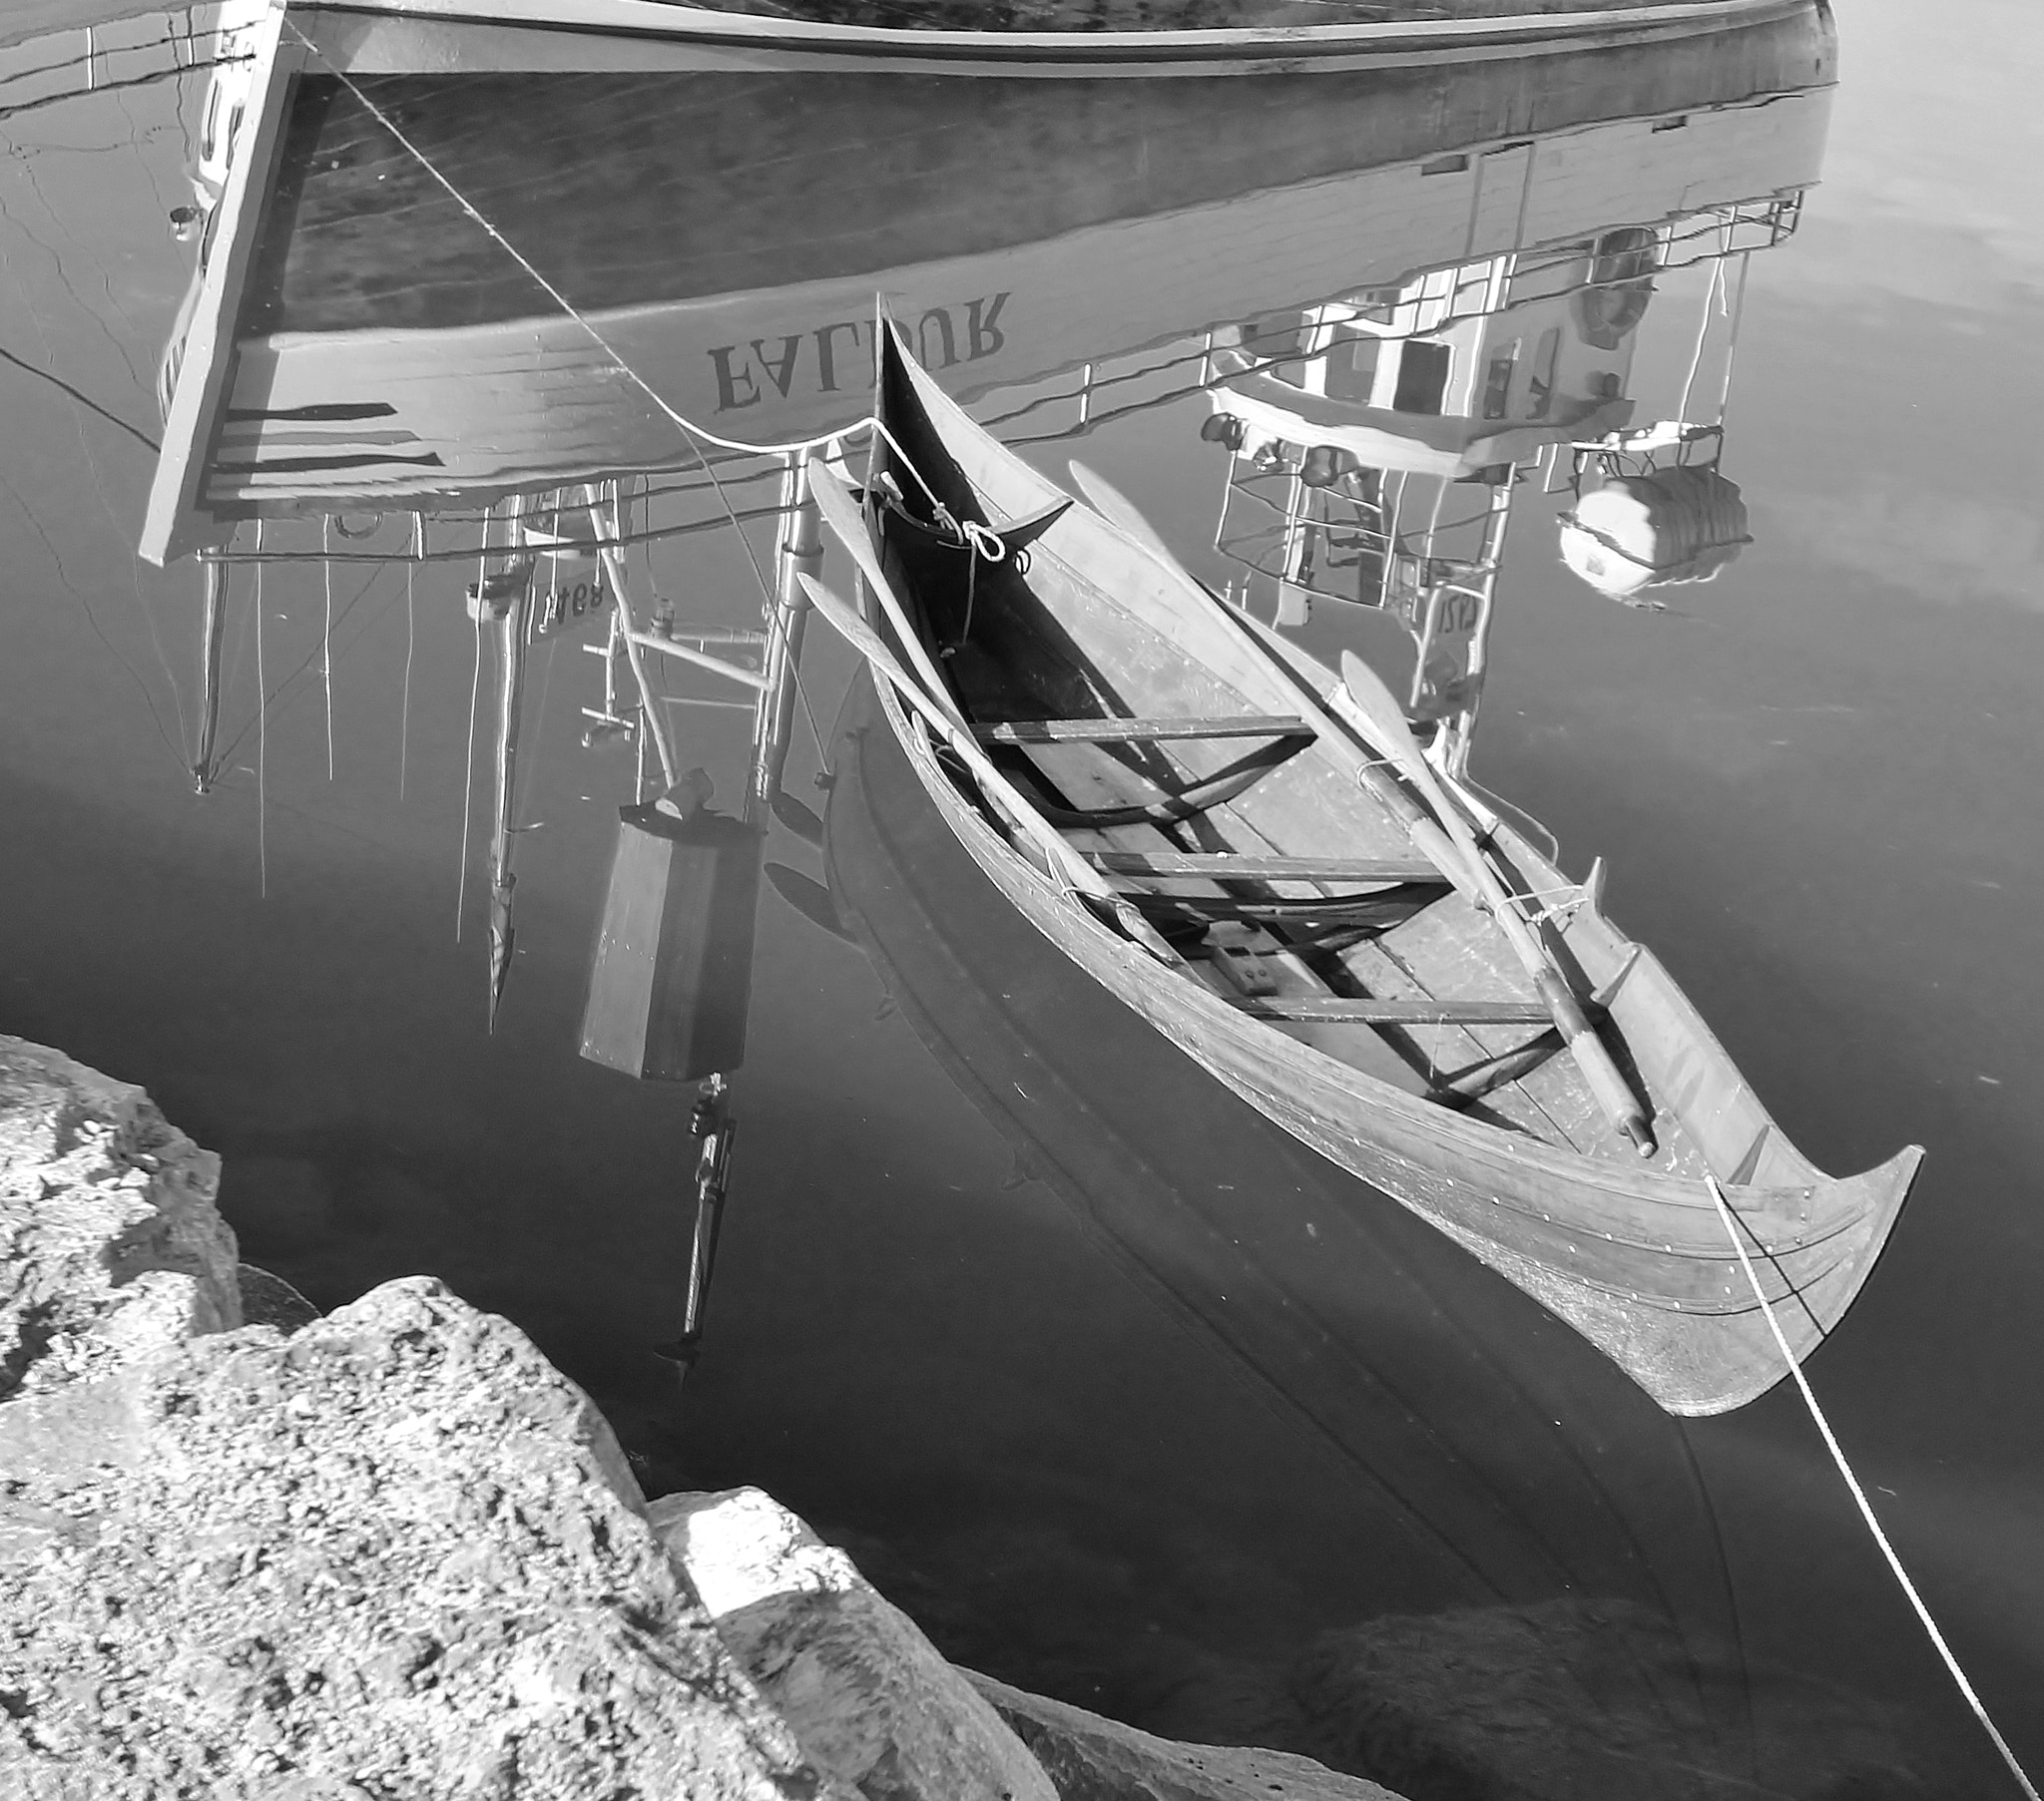 Photograph Húsavík harbour reflections in b/w by Nora 80 on 500px